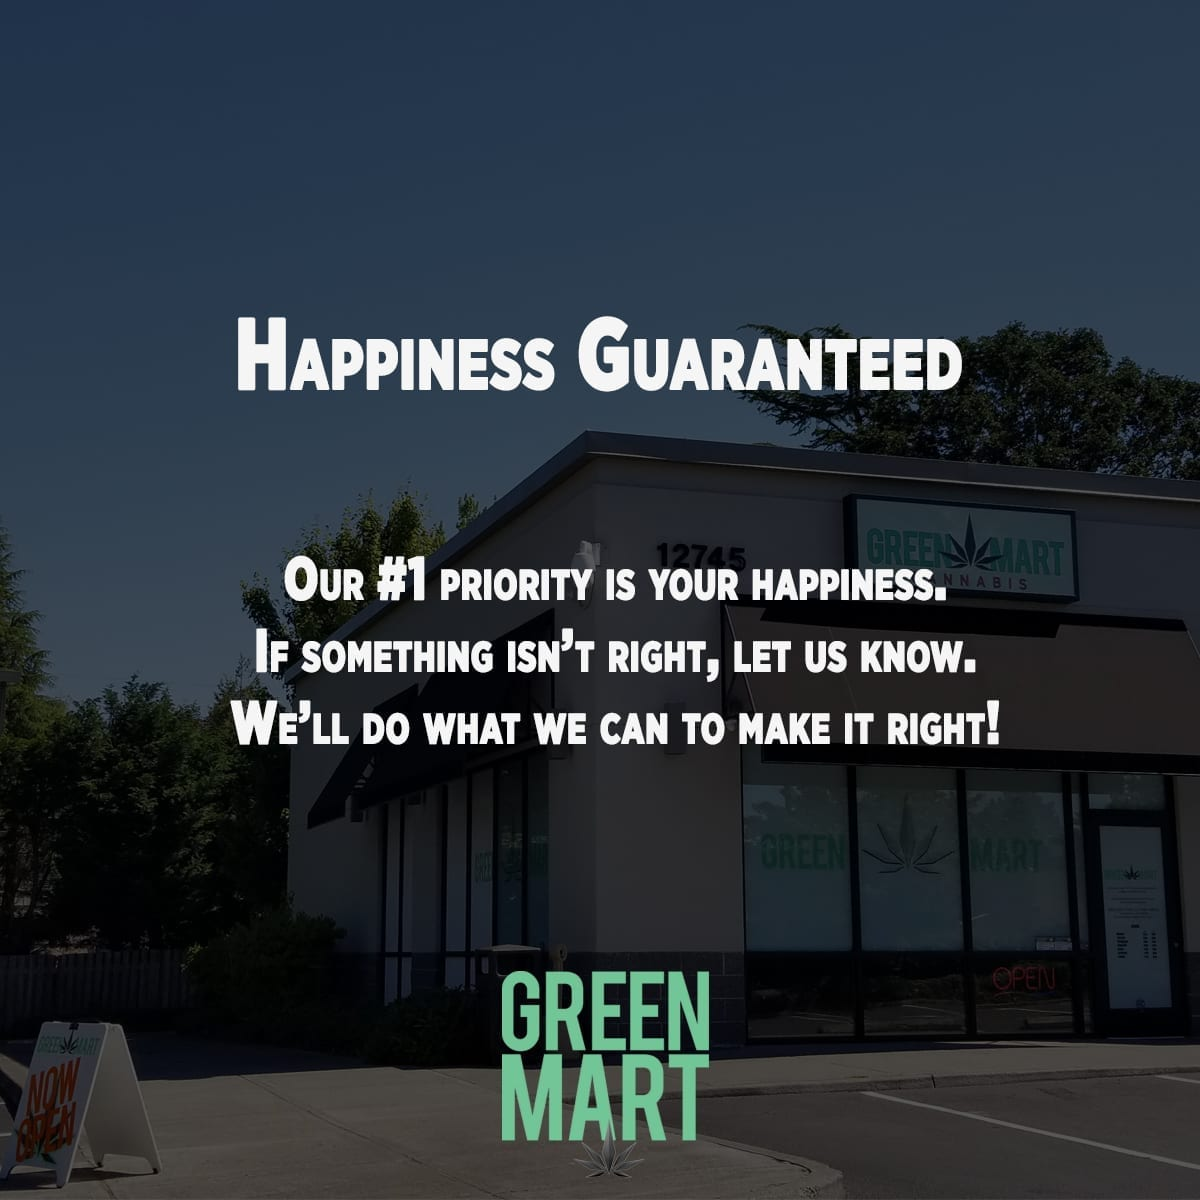 Our #1 priority is your happiness. If something isn't right, let us know. We'll do what we can to make it right!